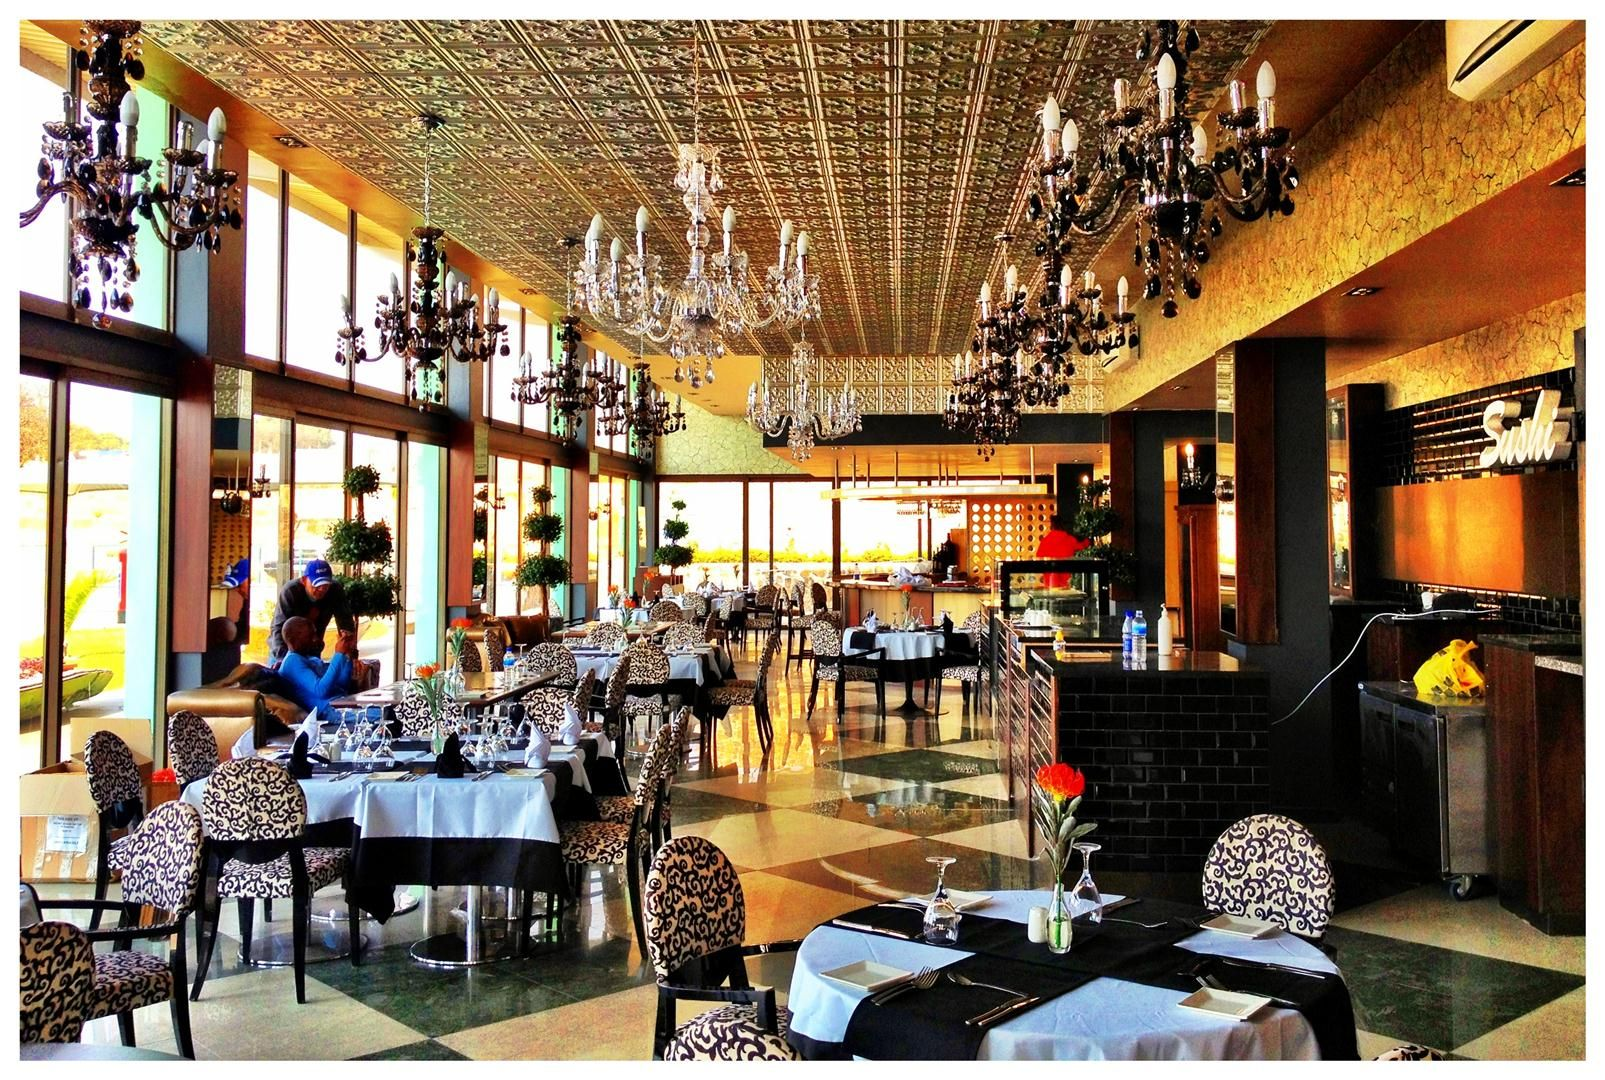 Uncategorized Restaurants Decor vietopia vietnamese restaurant offers houston the very best in asian infused cuisine enjoy any number of rice vermicell